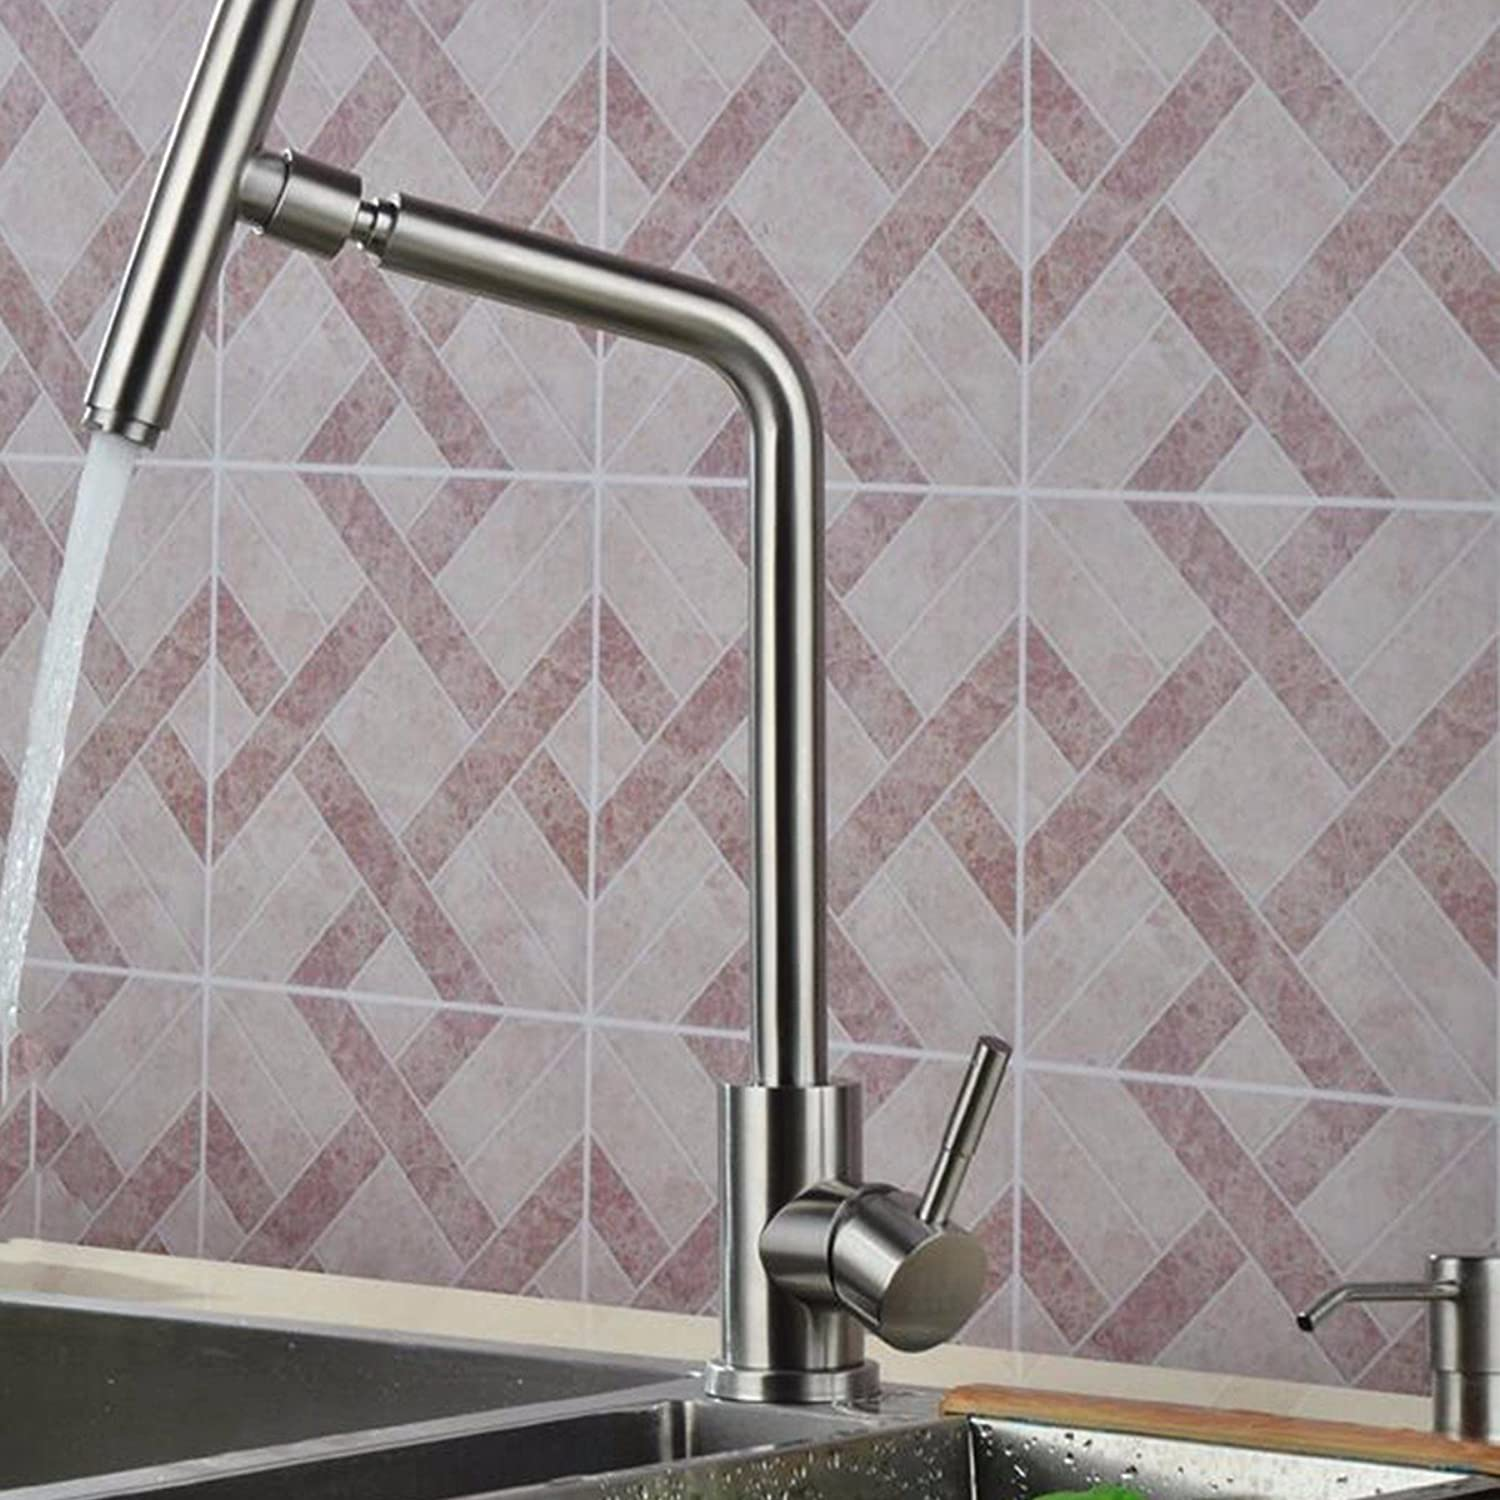 Kitchen faucet 304 Stainless Steel Kitchen Faucet, Single Cold Dish Washing Basin, redating Vegetable Basin Basin, Hot And Cold Faucet.